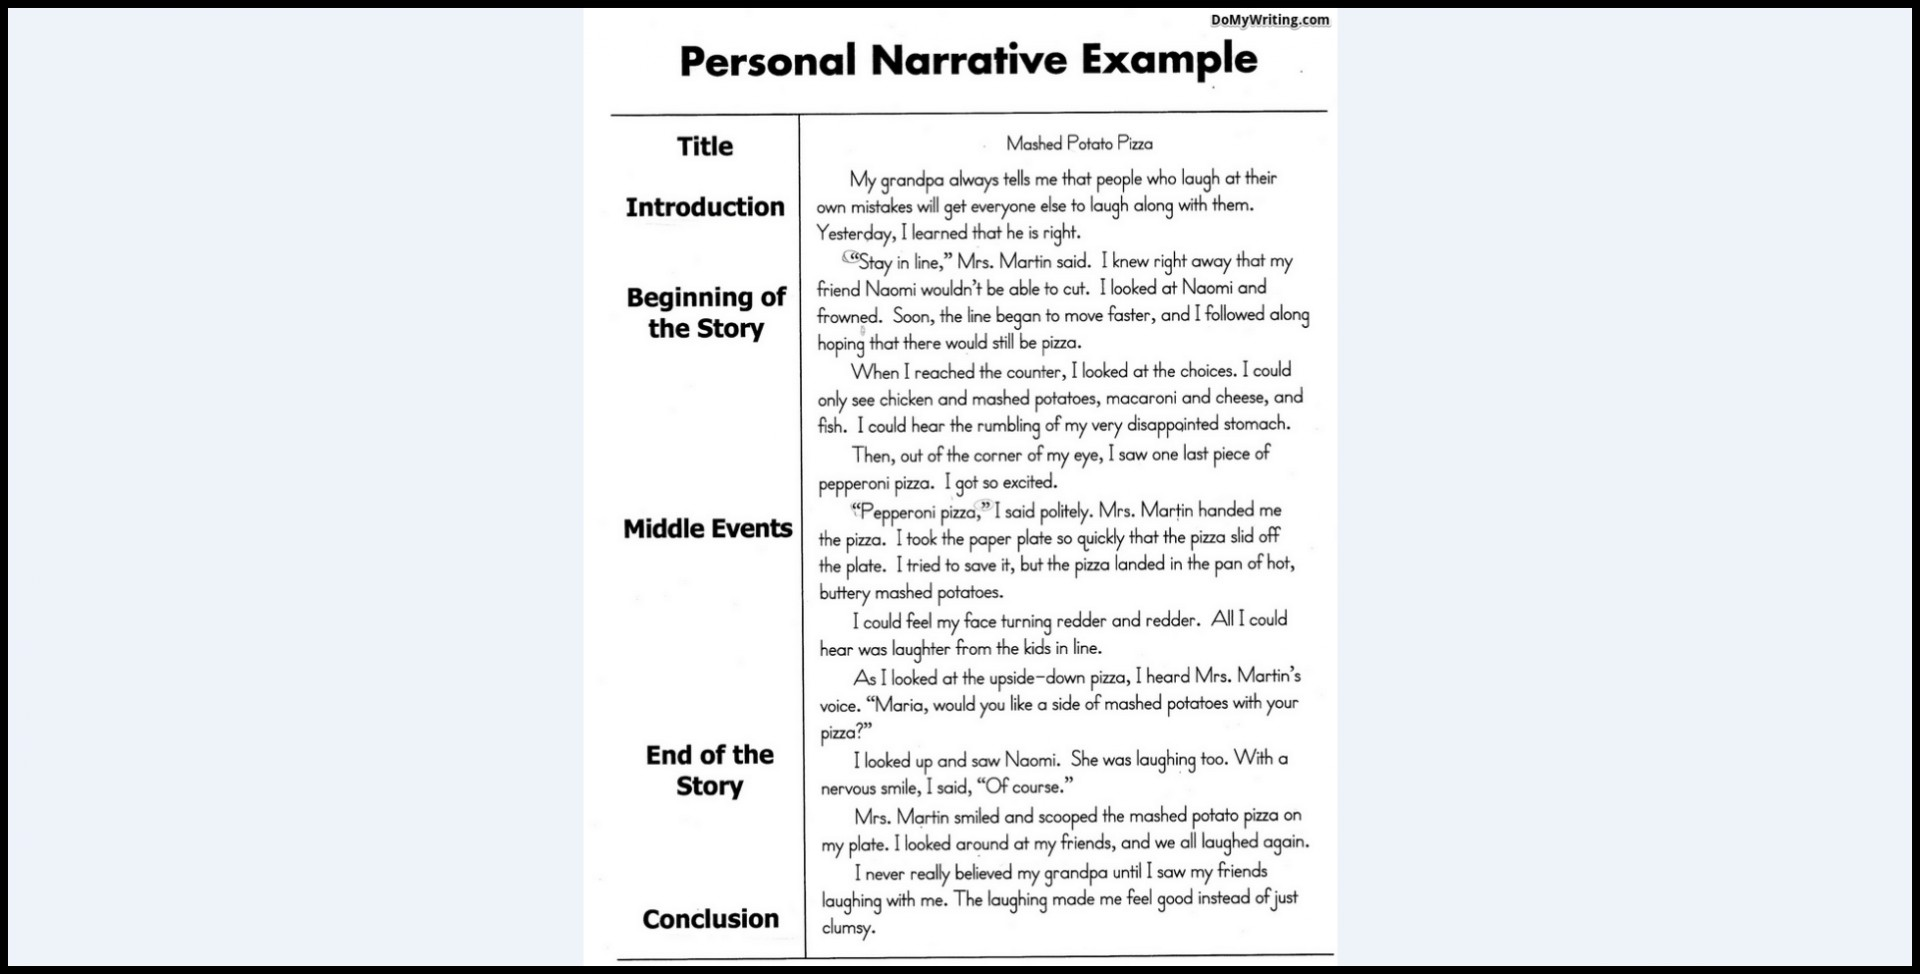 002 Narrative Essay Exceptional Sample Spm Structure Pdf Format 1920